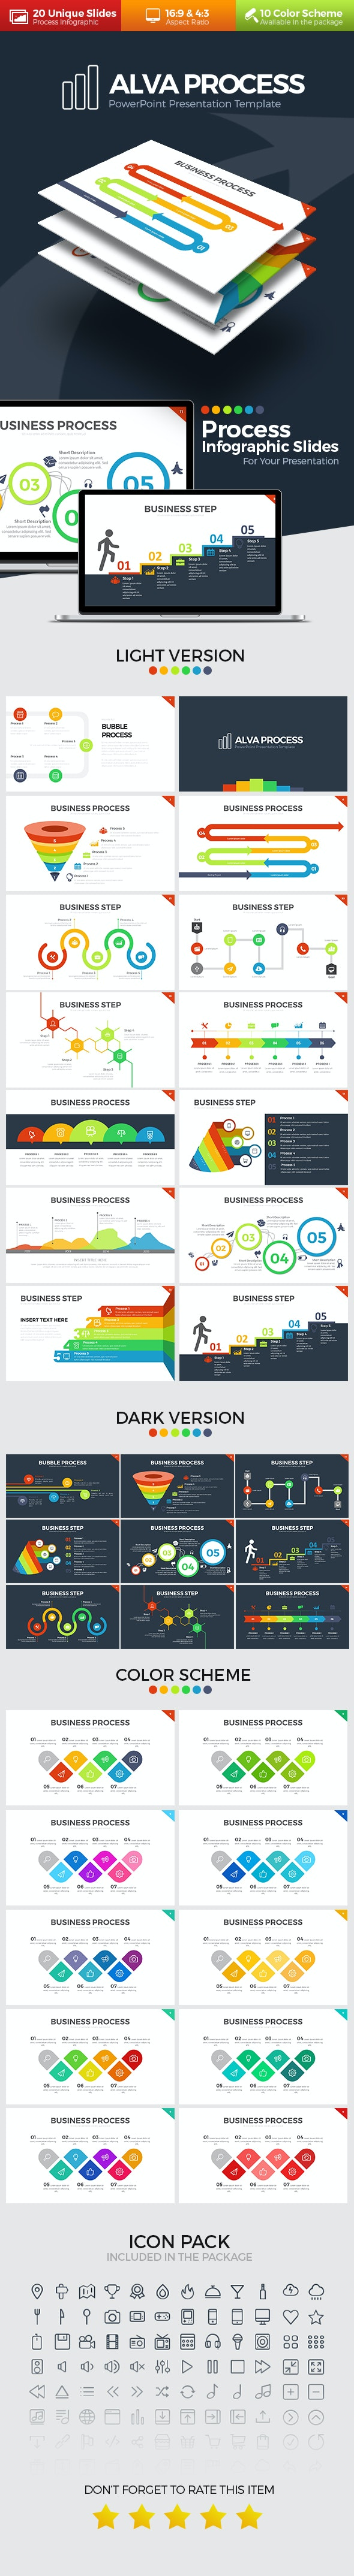 Alva Process Presentation Template - Business PowerPoint Templates